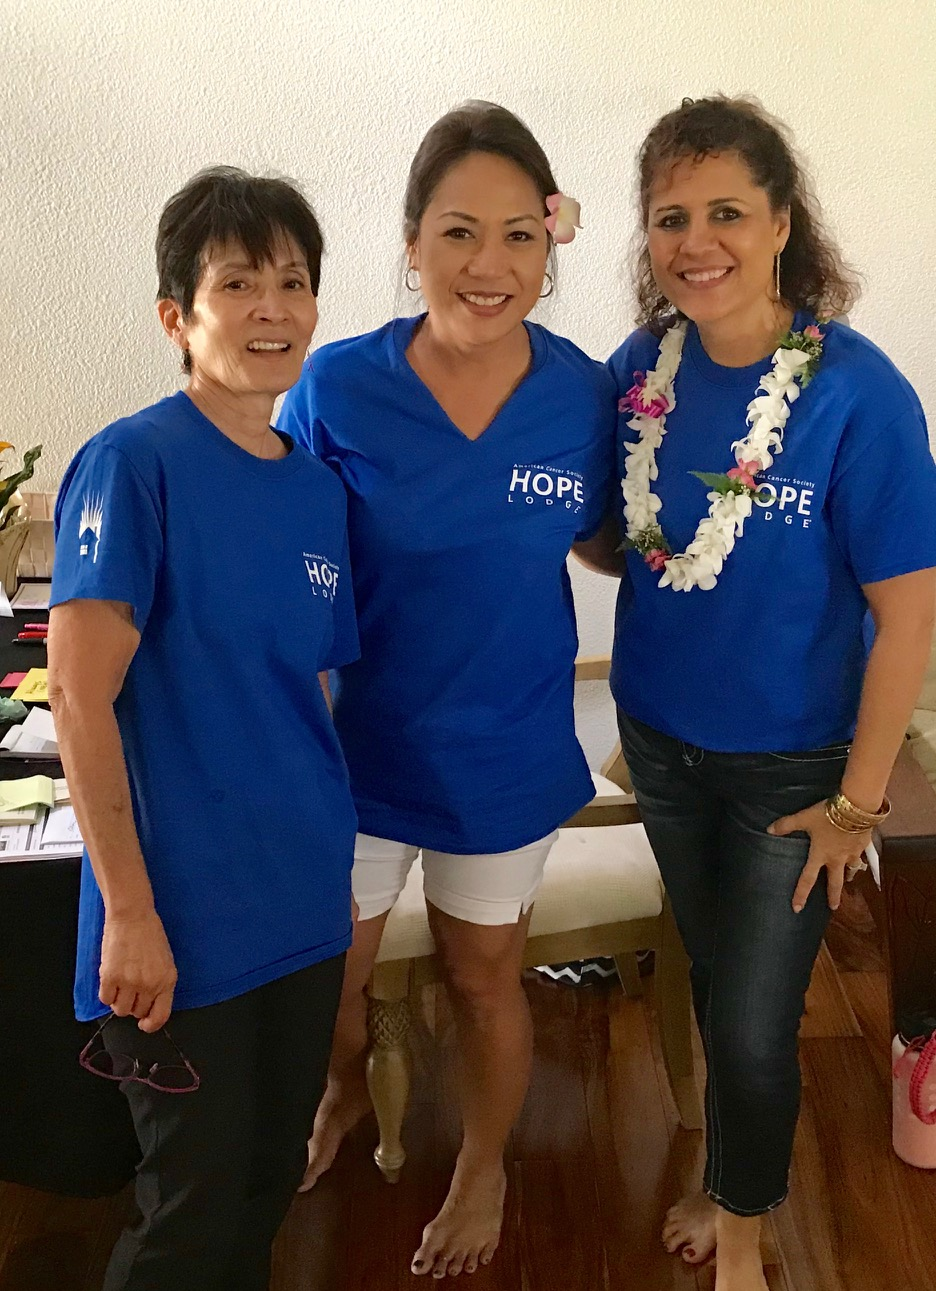 Annie, Michelle and Cindy - www.stampedwithaloha.com